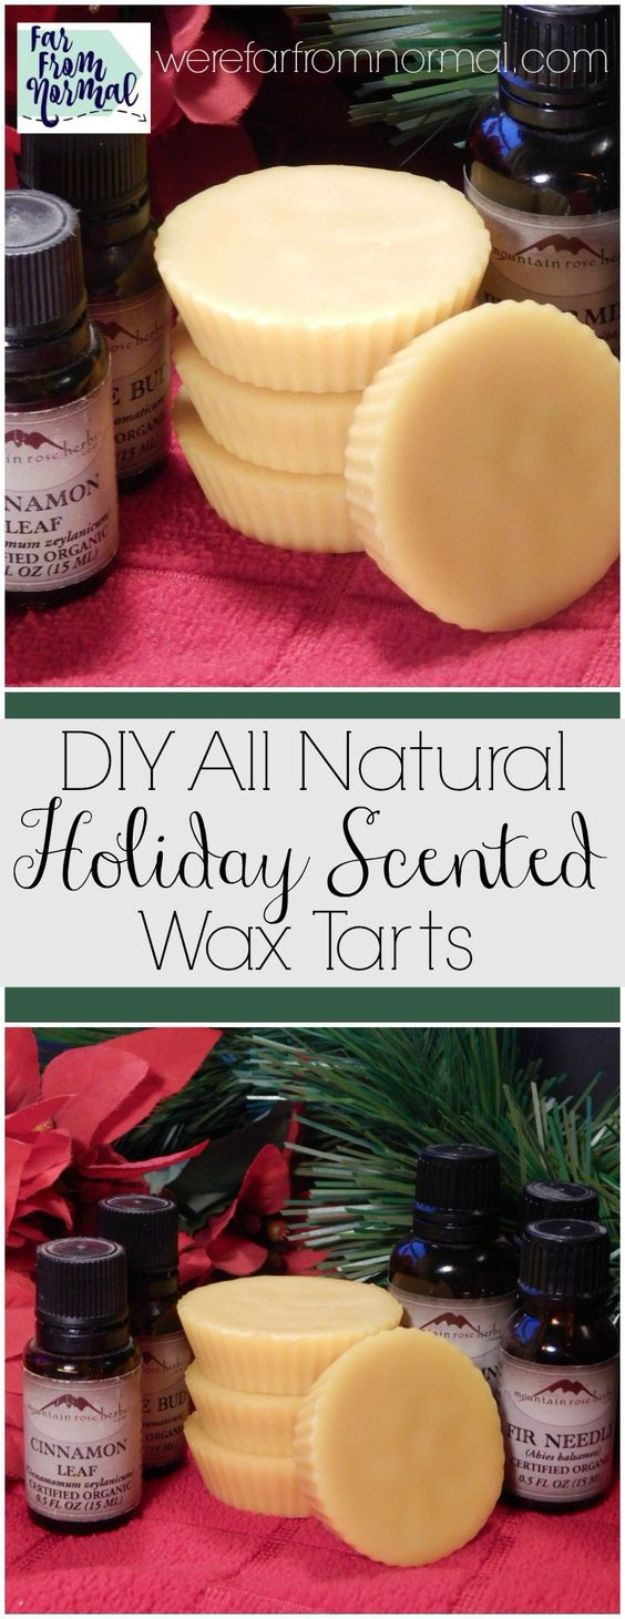 DIY Home Fragrance Ideas - All Natural Christmas Scented Wax Tarts - Easy Ways To Make your House and Home Smell Good - Essential Oils, Diffusers, DIY Lampe Berger Oil, Candles, Room Scents and Homemade Recipes for Odor Removal - Relaxing Lavender, Fresh Clean Smells, Lemon, Herb